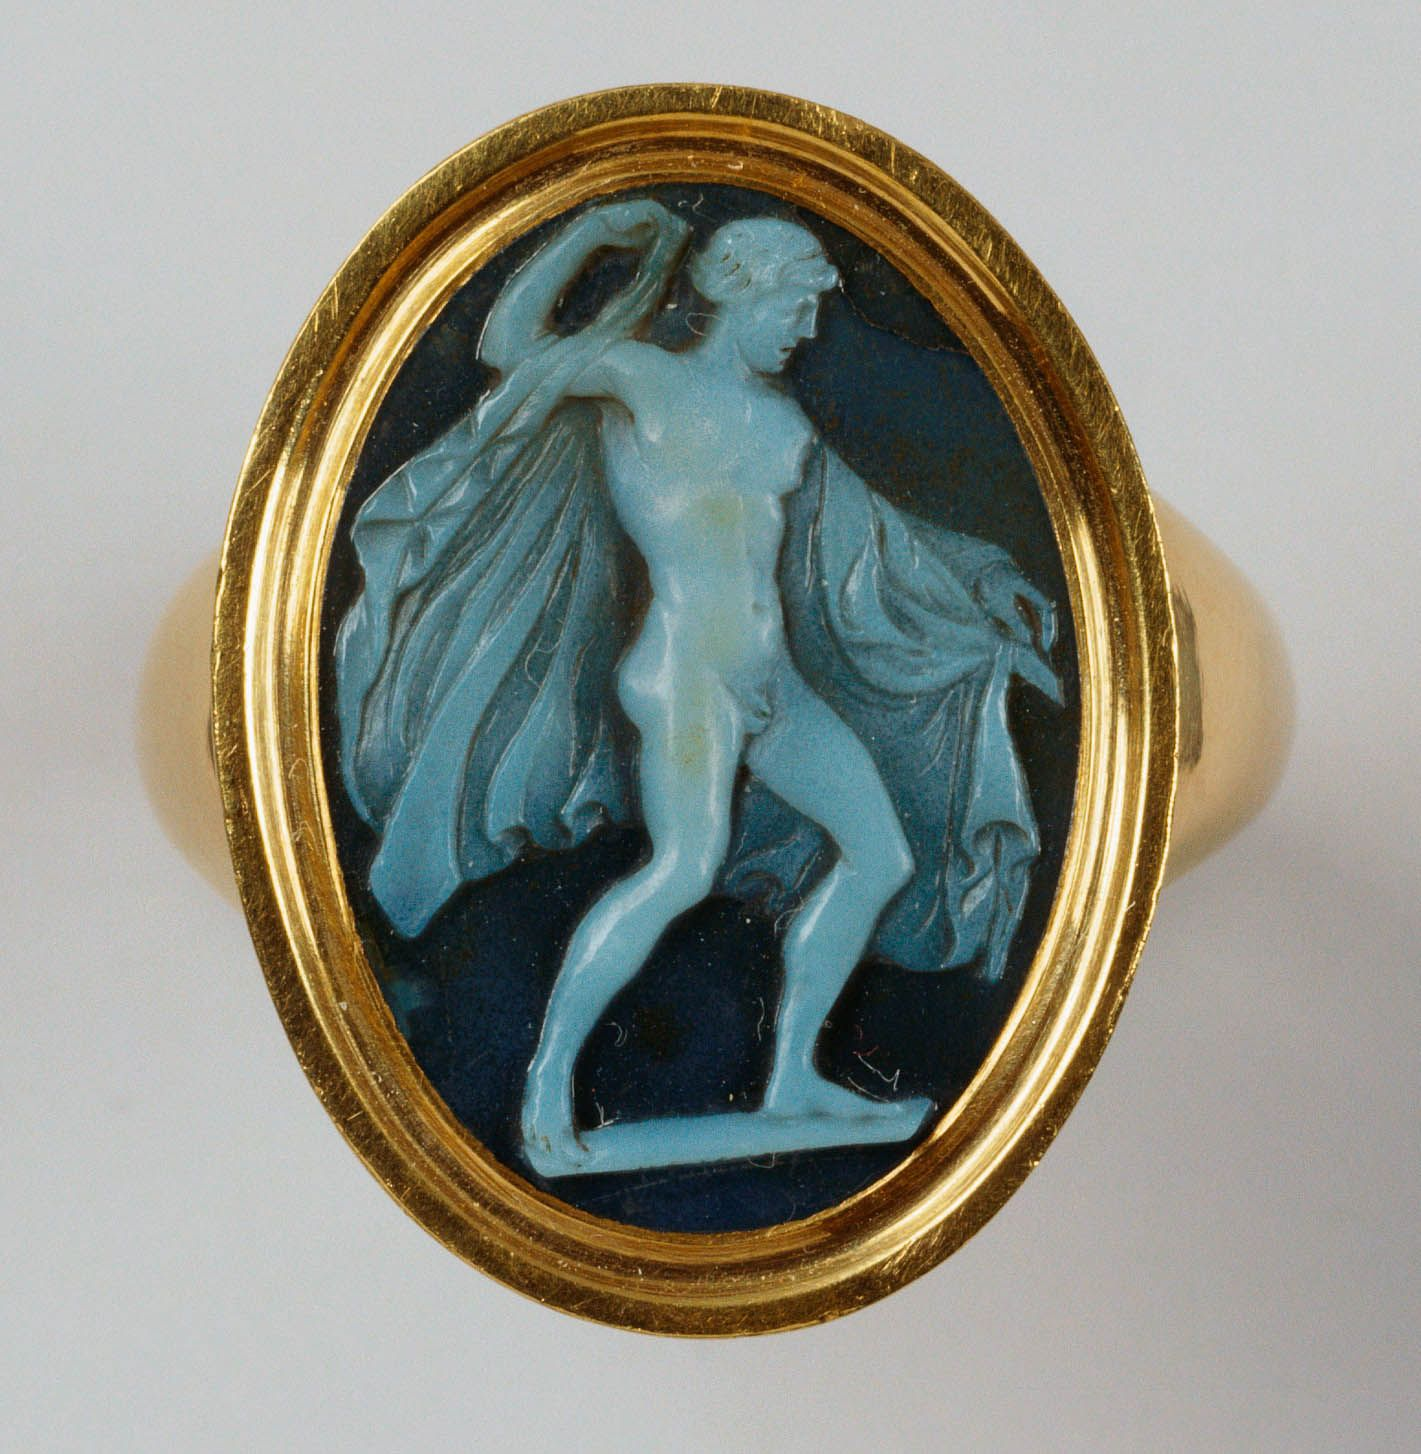 Cameo of a full-length naked figure of the god of wine, Dionysus, dancing, in three-quarter view, with his head in profile to the right. A cloak is draped over his left arm and held in his raised right hand. English, cameo 18th century, ring late 18th century, onyx and gold